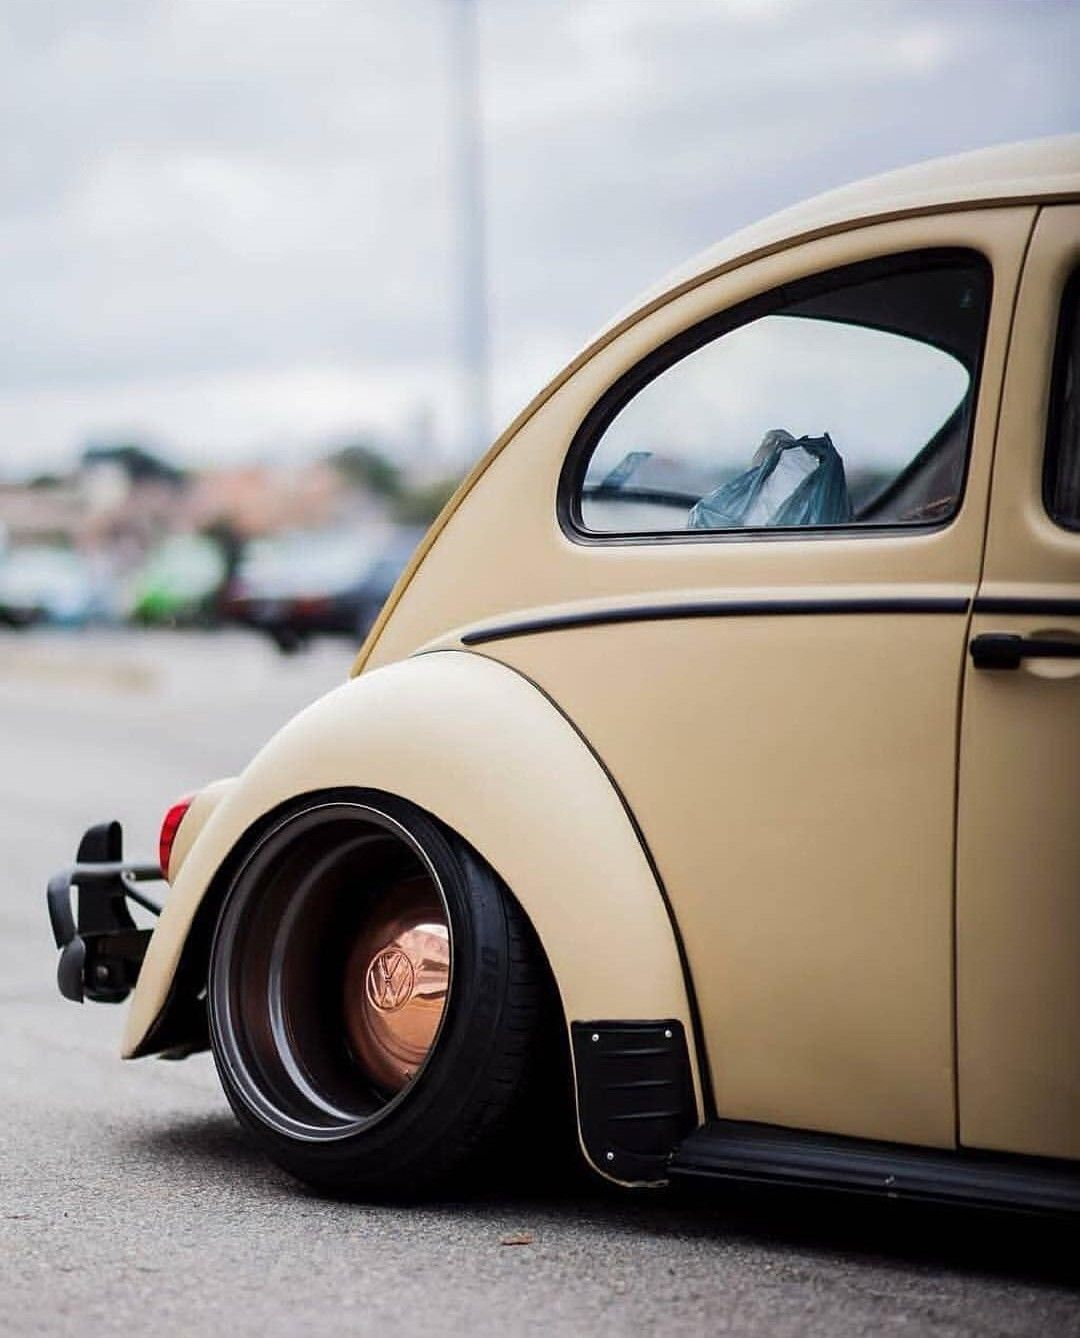 1967 Vw Beetle Show Car For Sale Oldbug Com: Pin By Solano Lacerda On LowRider/ClassicCar